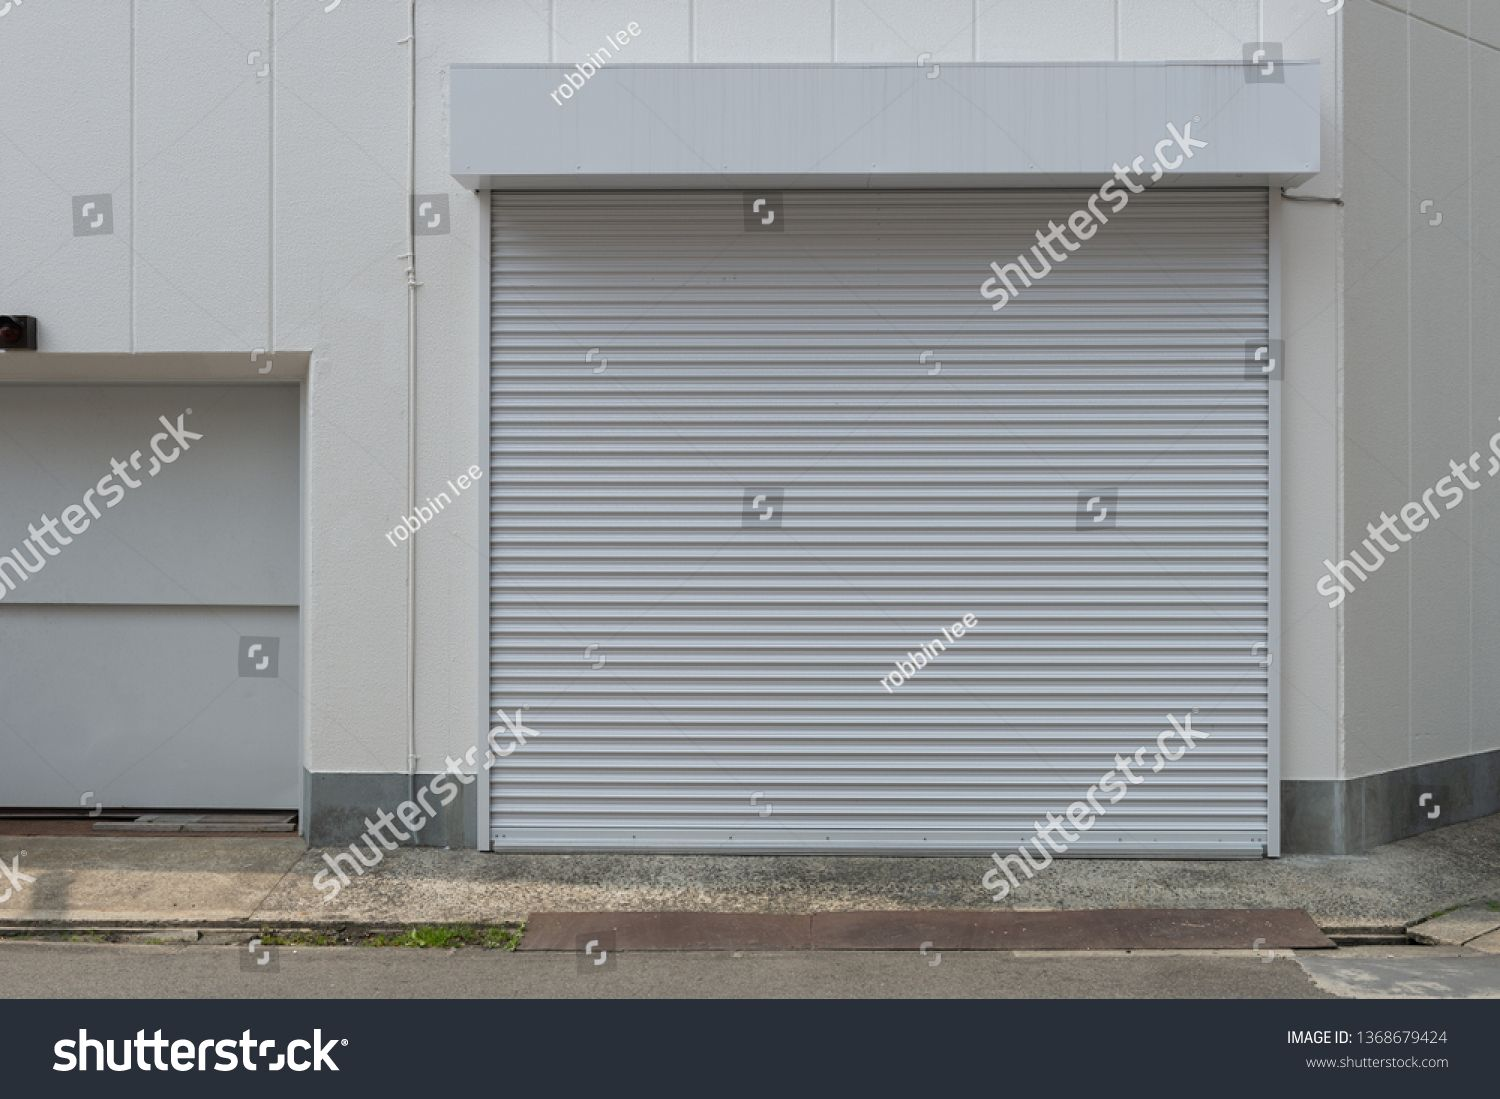 A Closeup Shot Of Automatic Metal Roller Door Used In Factory Storage Garage And Industrial Warehouse The Corrugated And Fol In 2020 Roller Doors Metal Sheet Doors